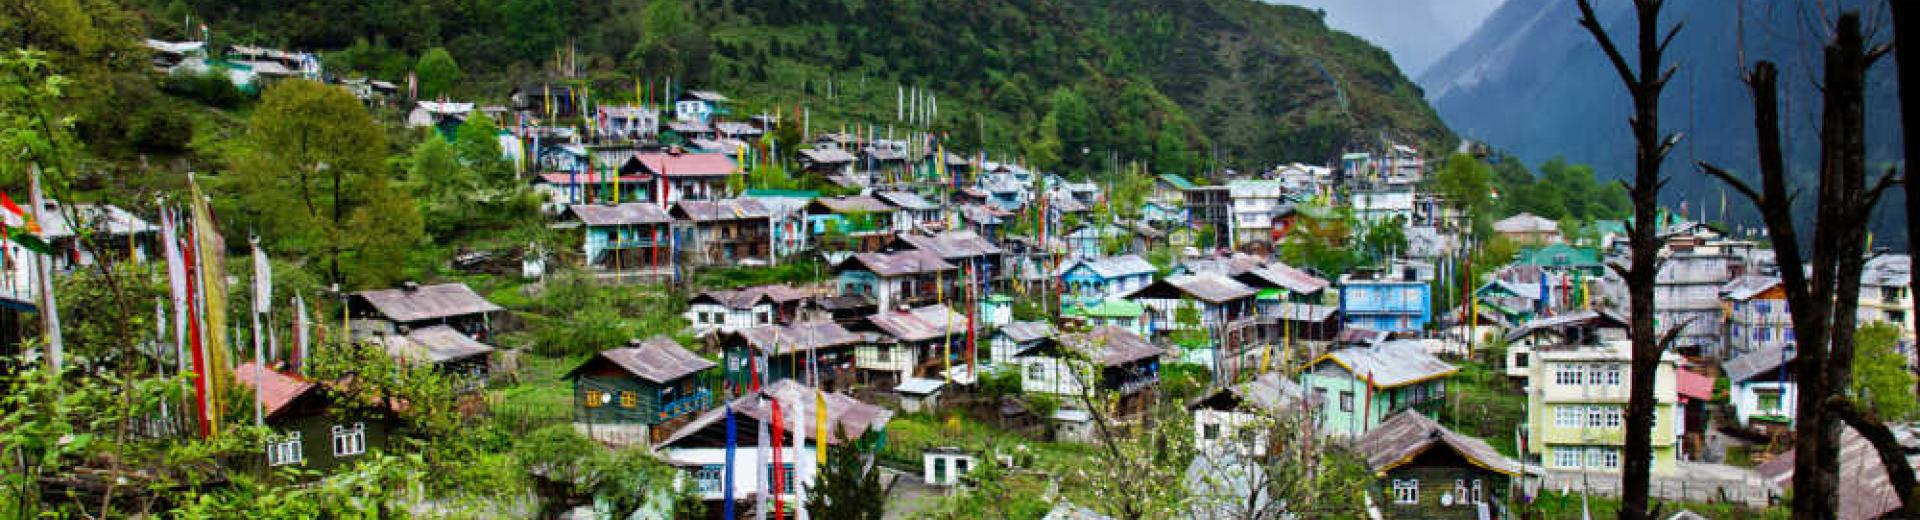 sikkim homes